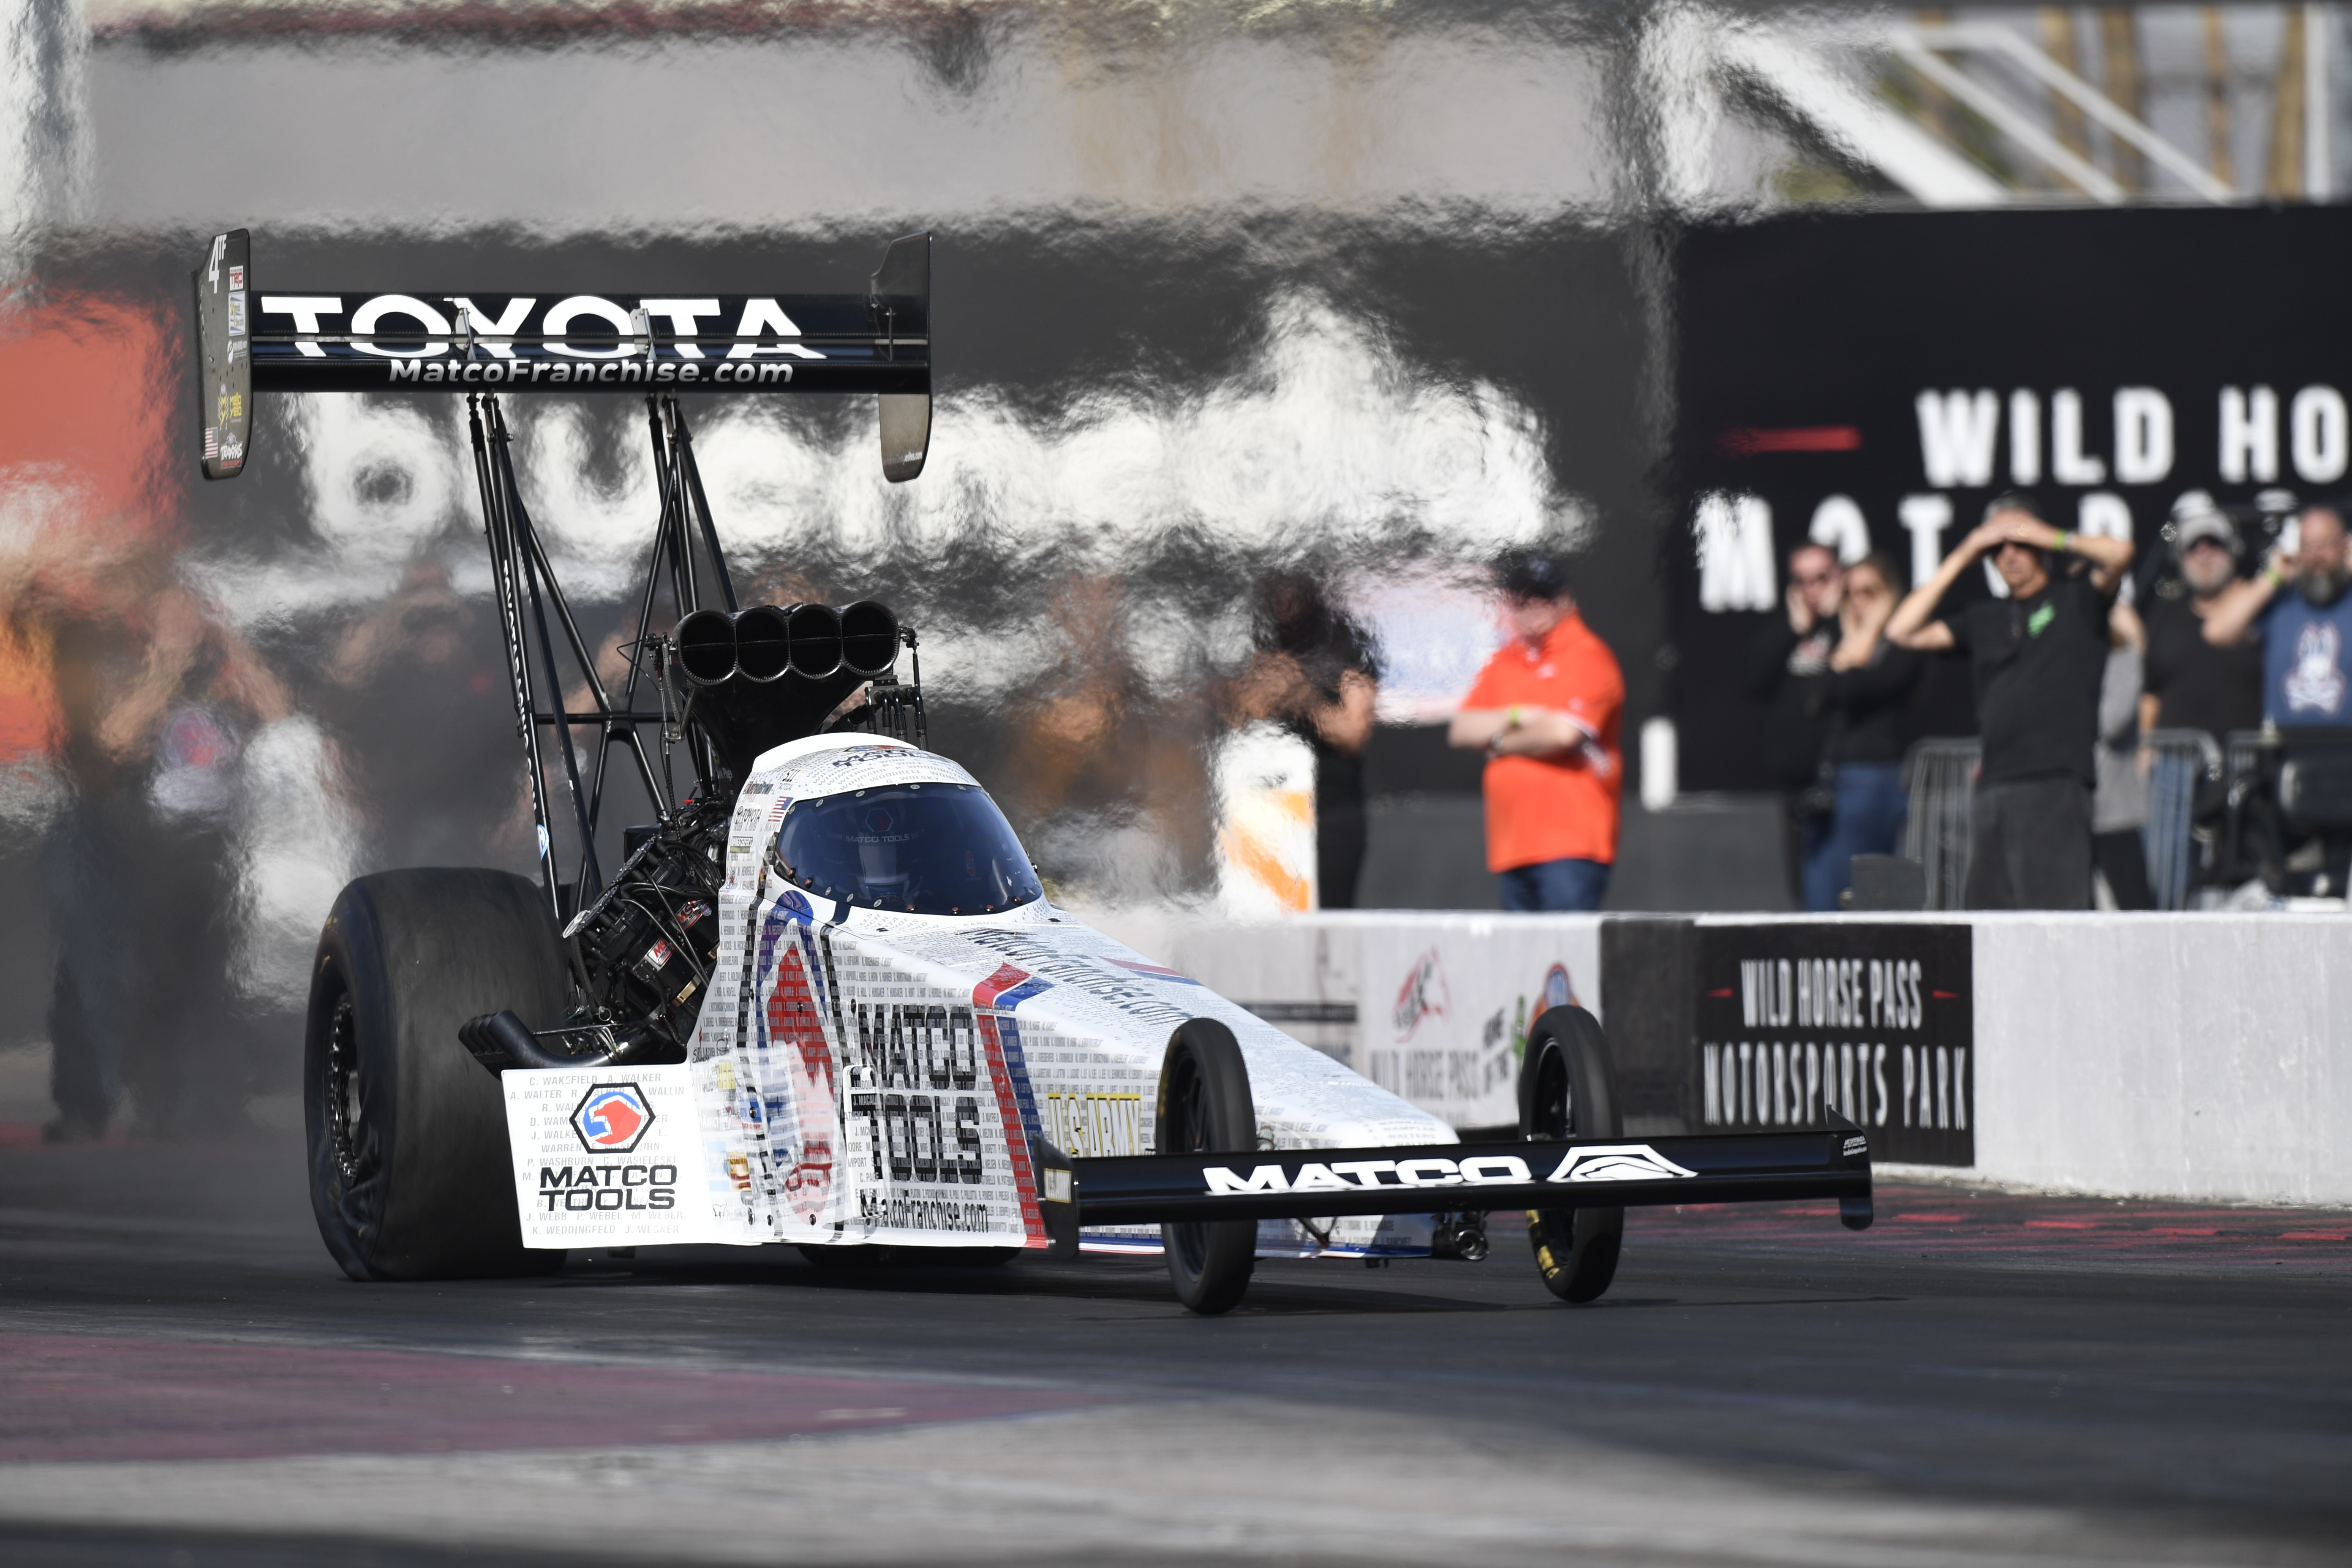 The Life of a Top Fuel Piston: as Told by Antron Brown's Co-Crew Chief, Brad Mason